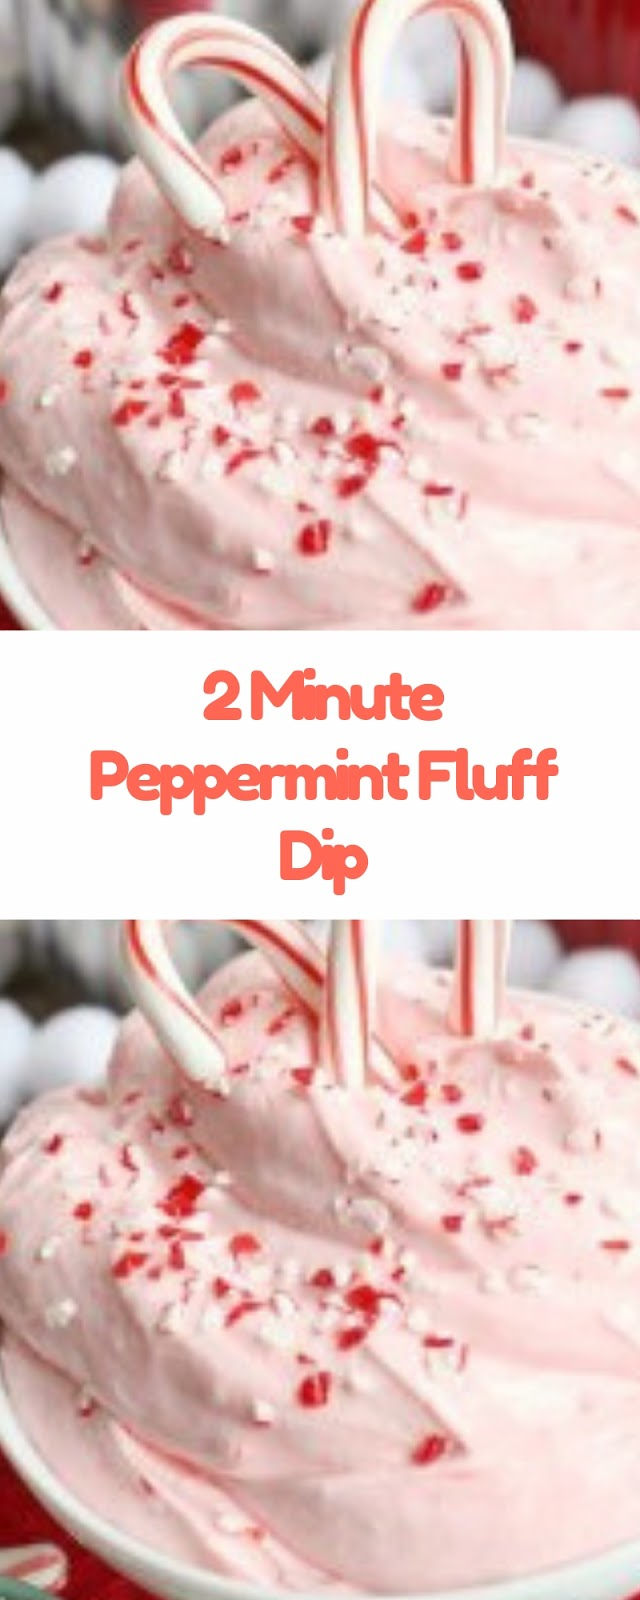 2 Minute Peppermint Fluff Dip